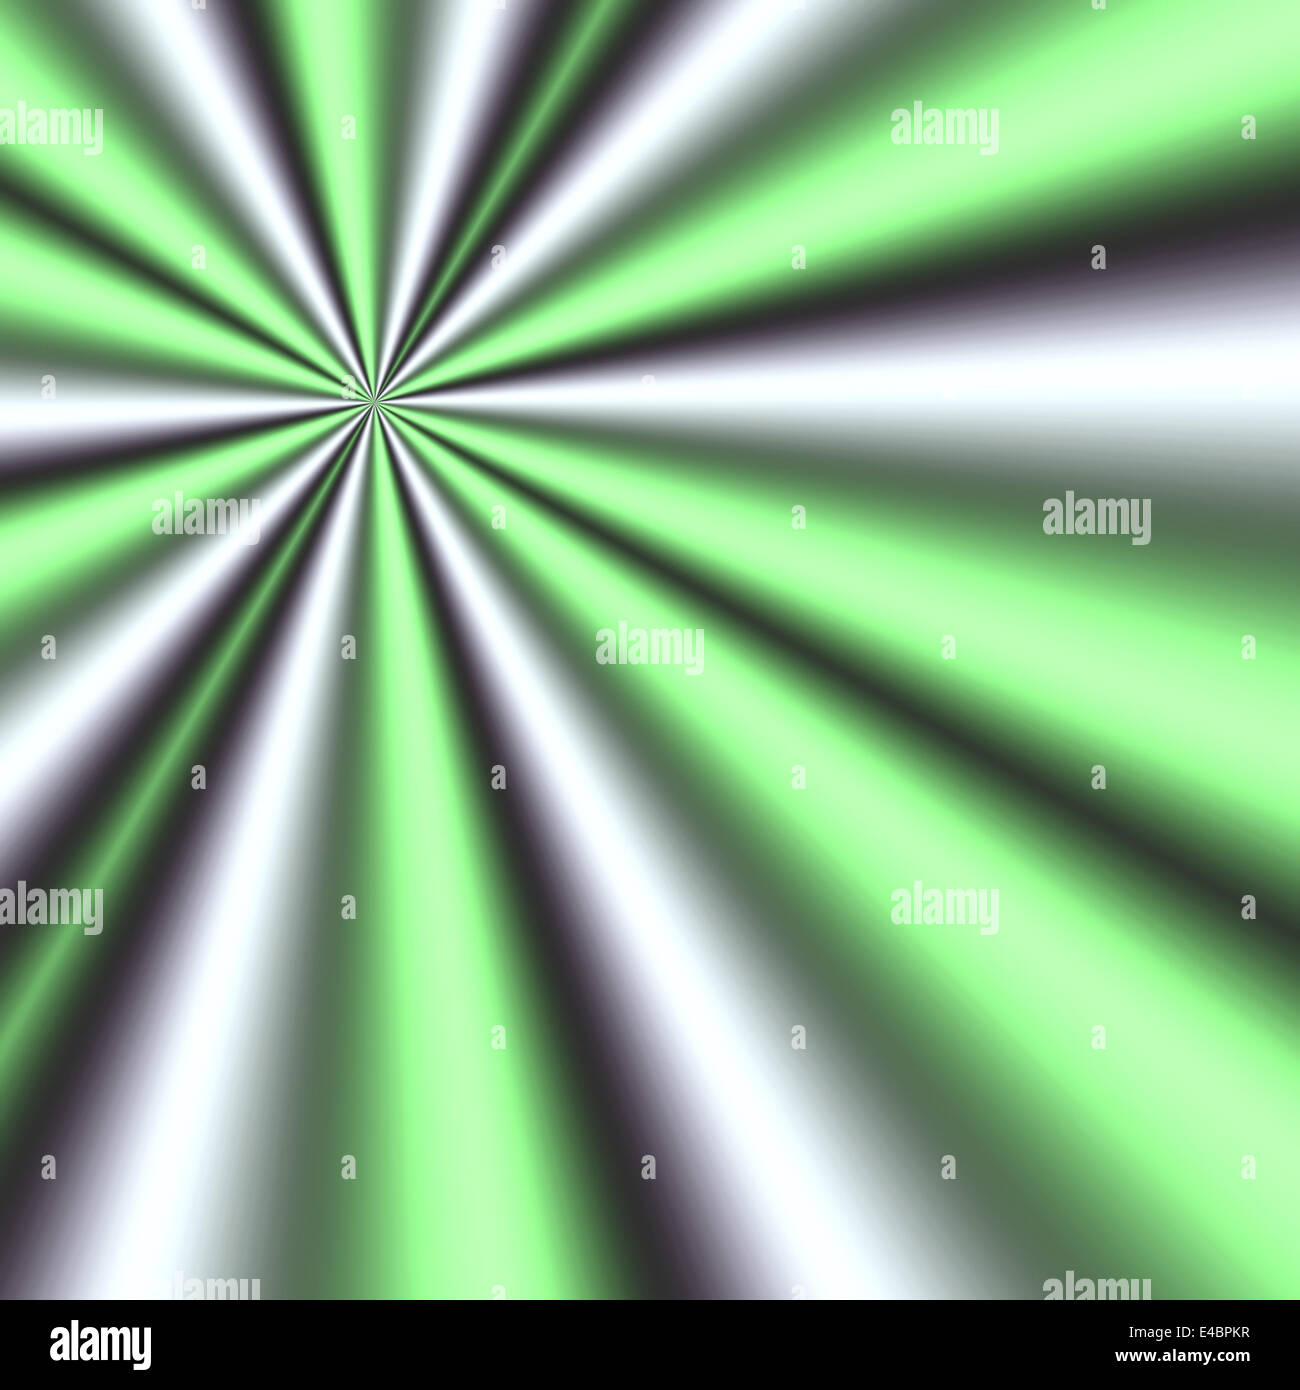 generated green and white rays - Stock Image